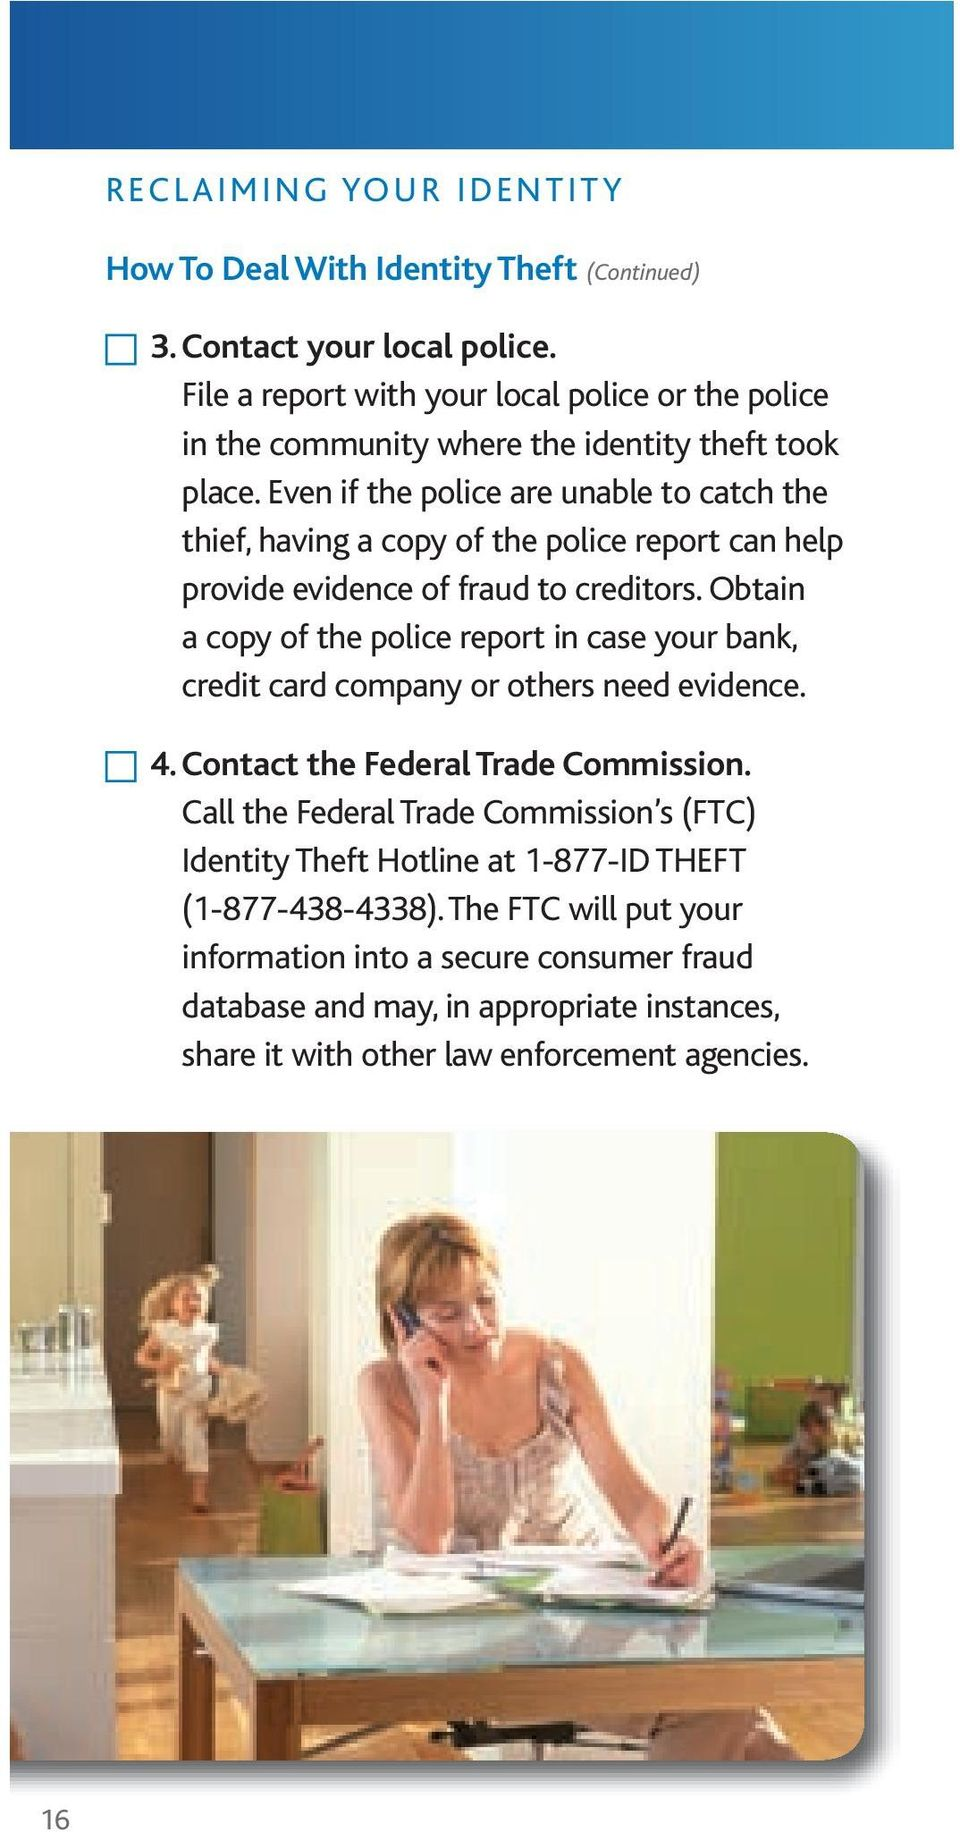 Even if the police are unable to catch the thief, having a copy of the police report can help provide evidence of fraud to creditors.